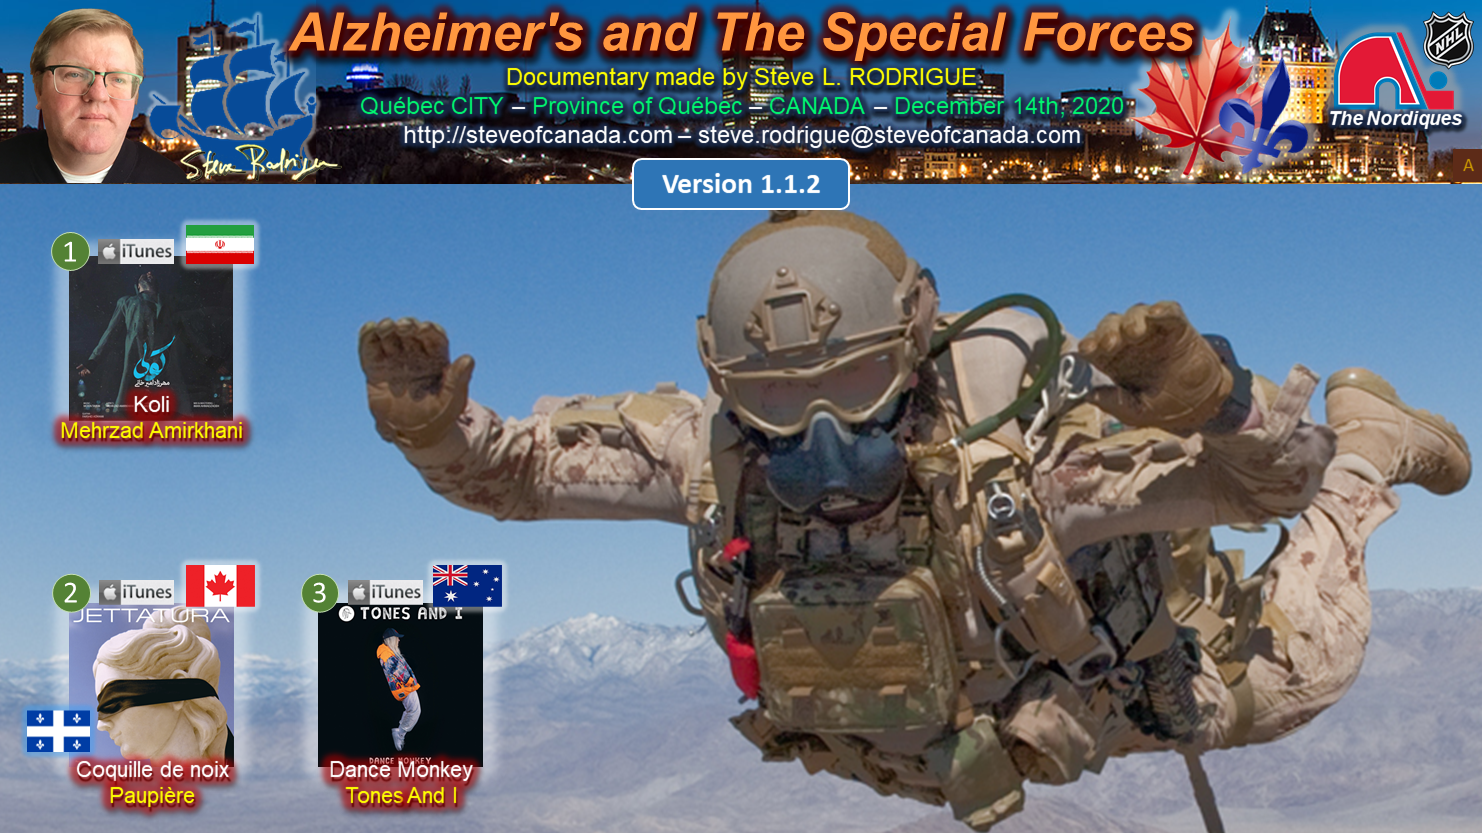 Alzheimer's and the Special Forces